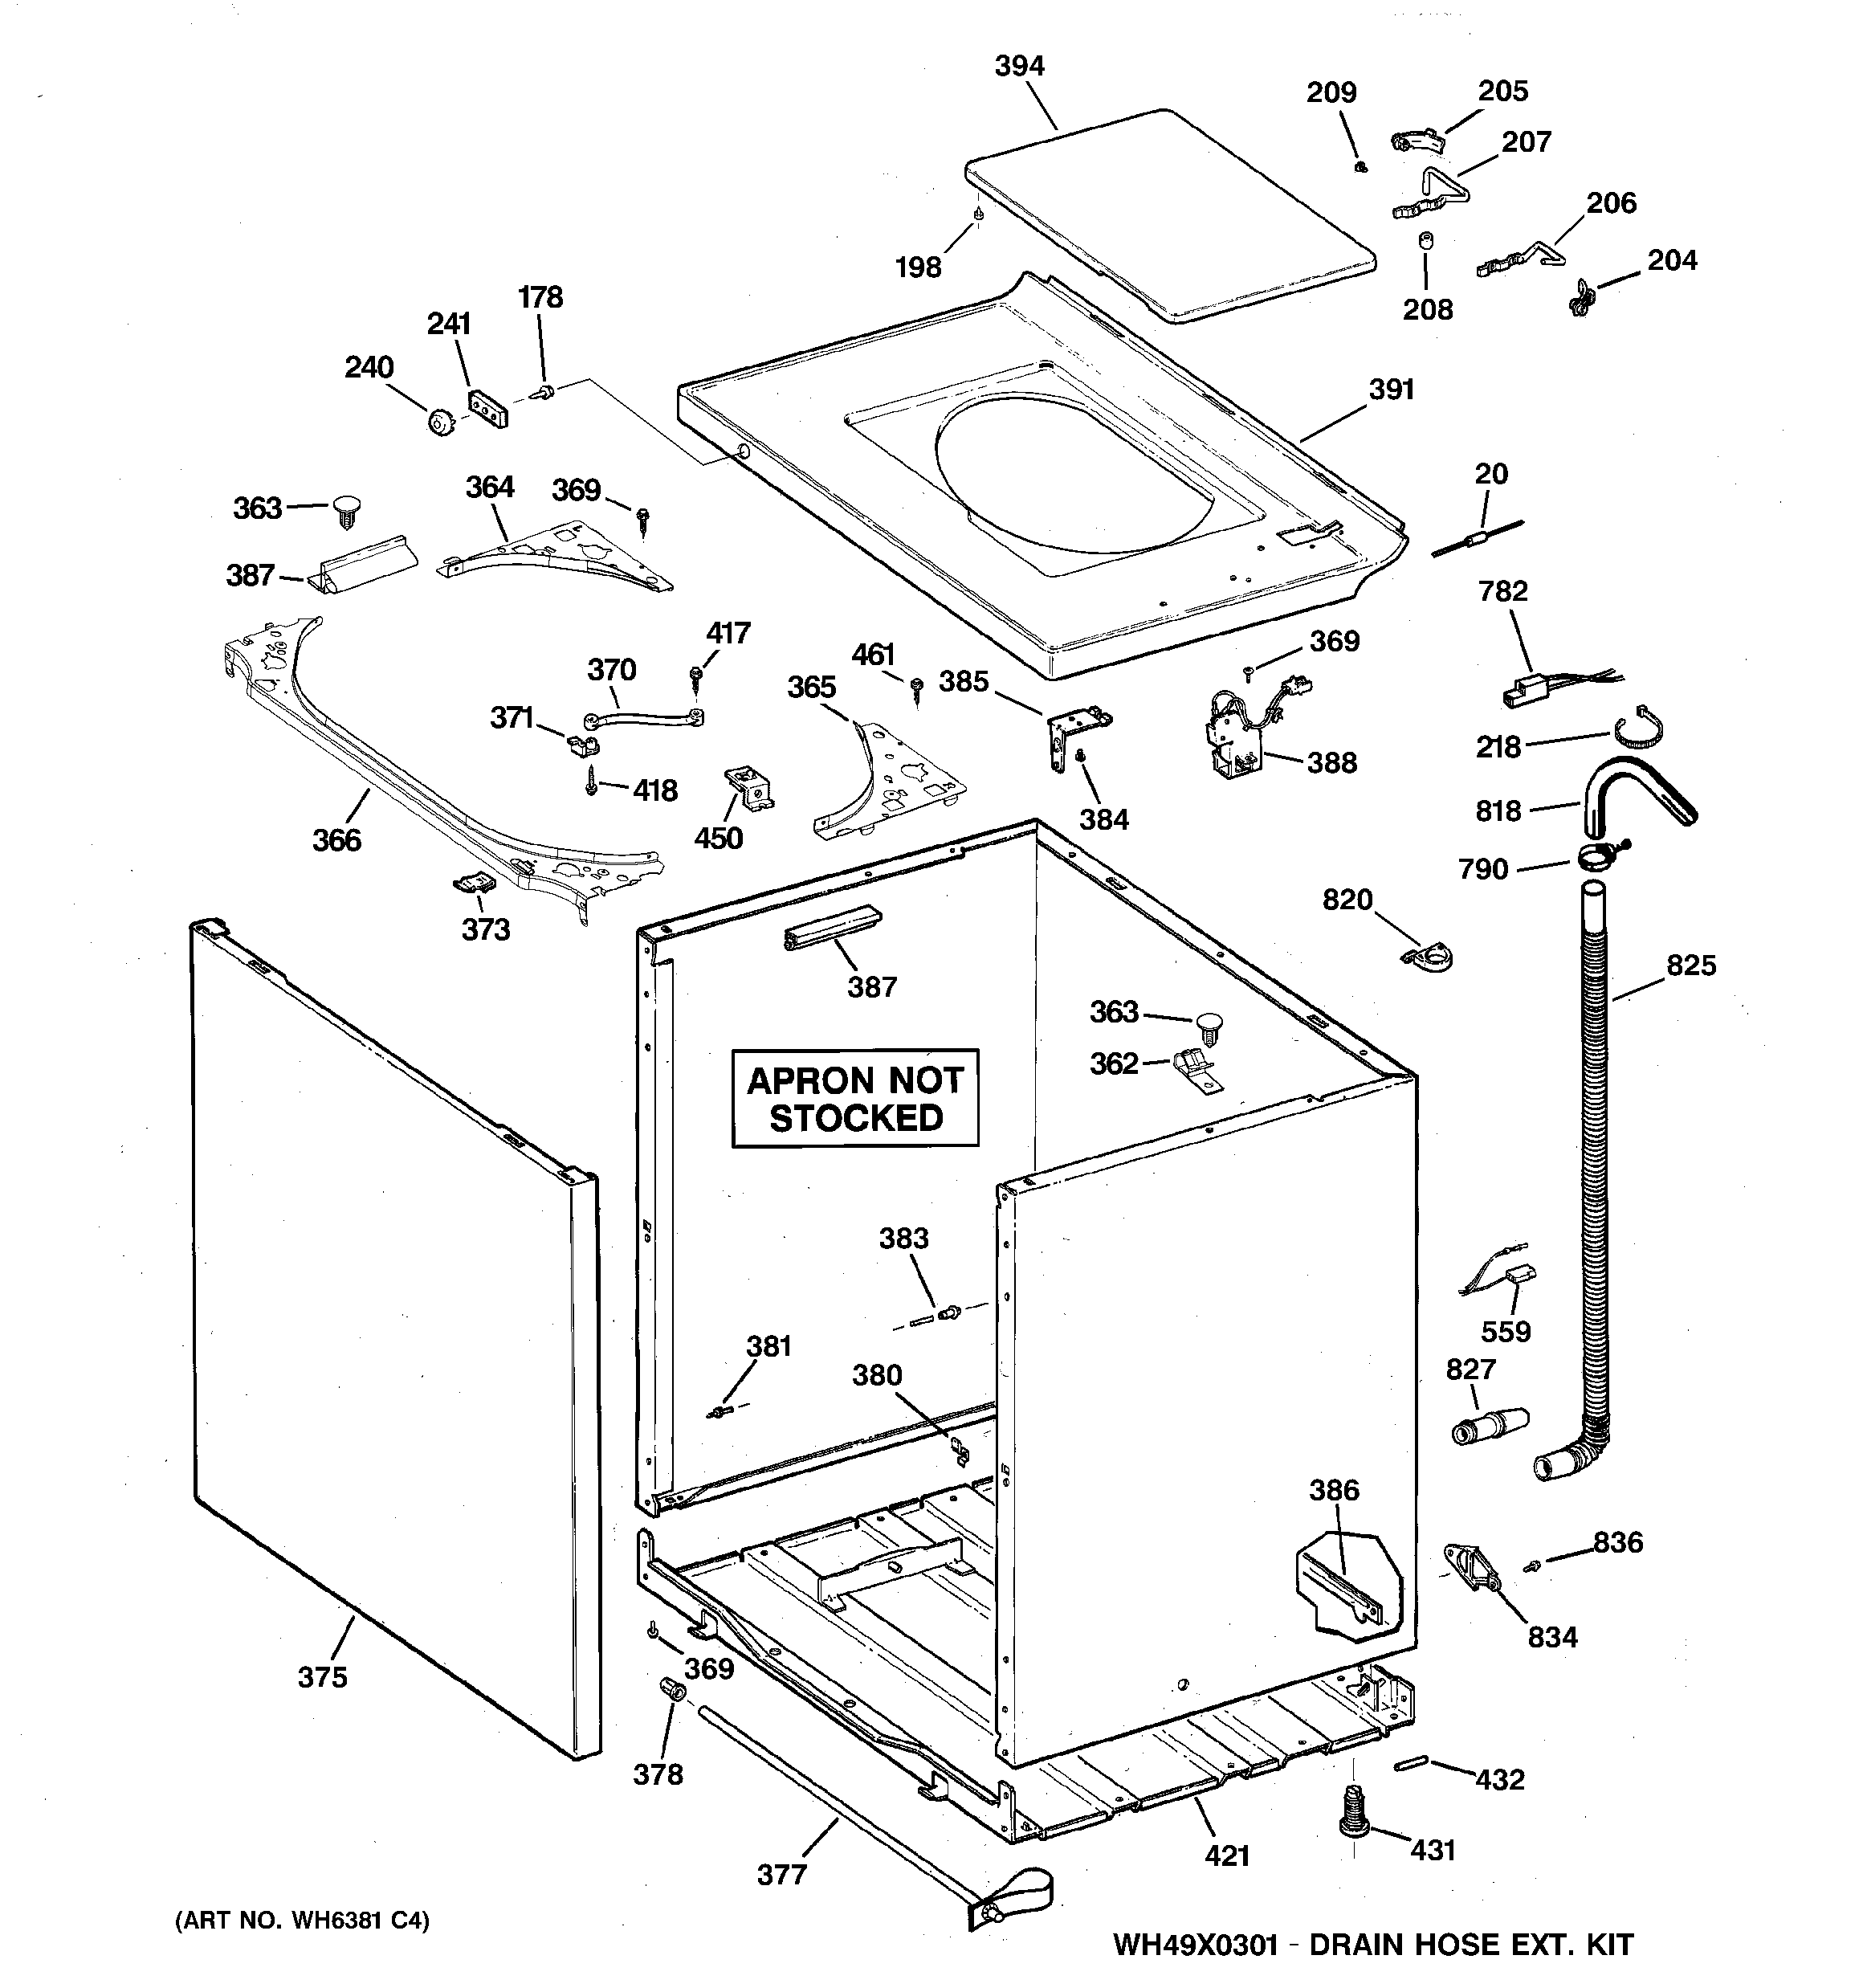 GE WCCD2050H5WC cabinet, cover & front panel diagram